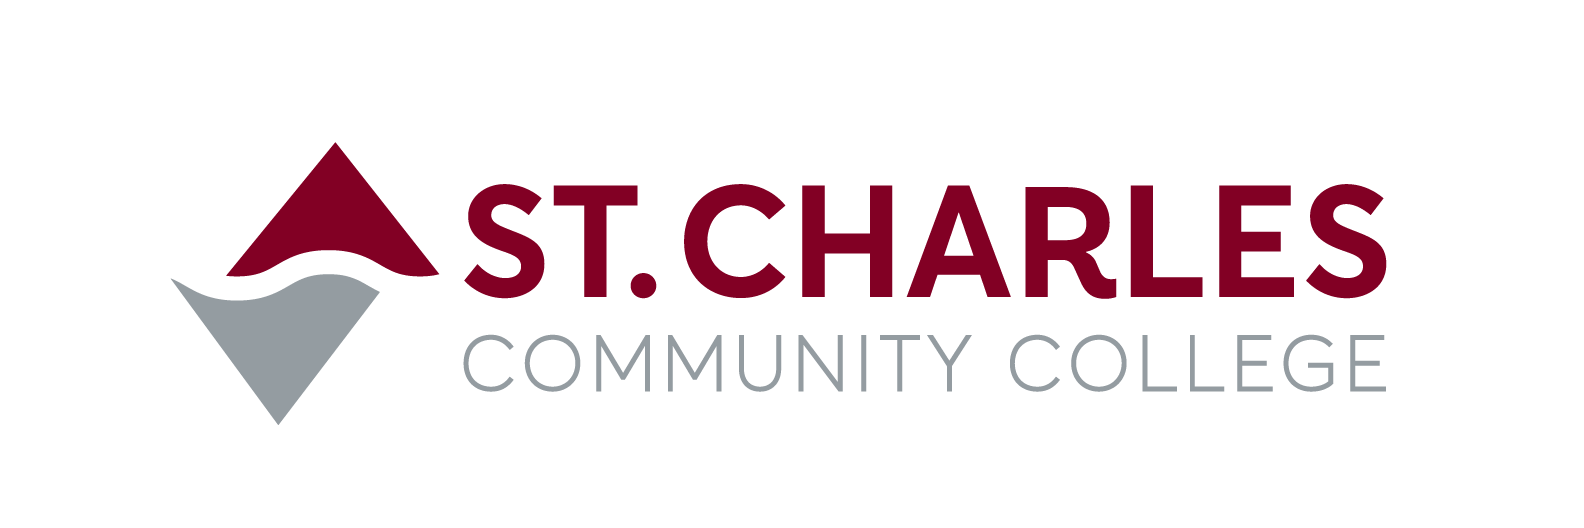 St. Charles Community College Named Best